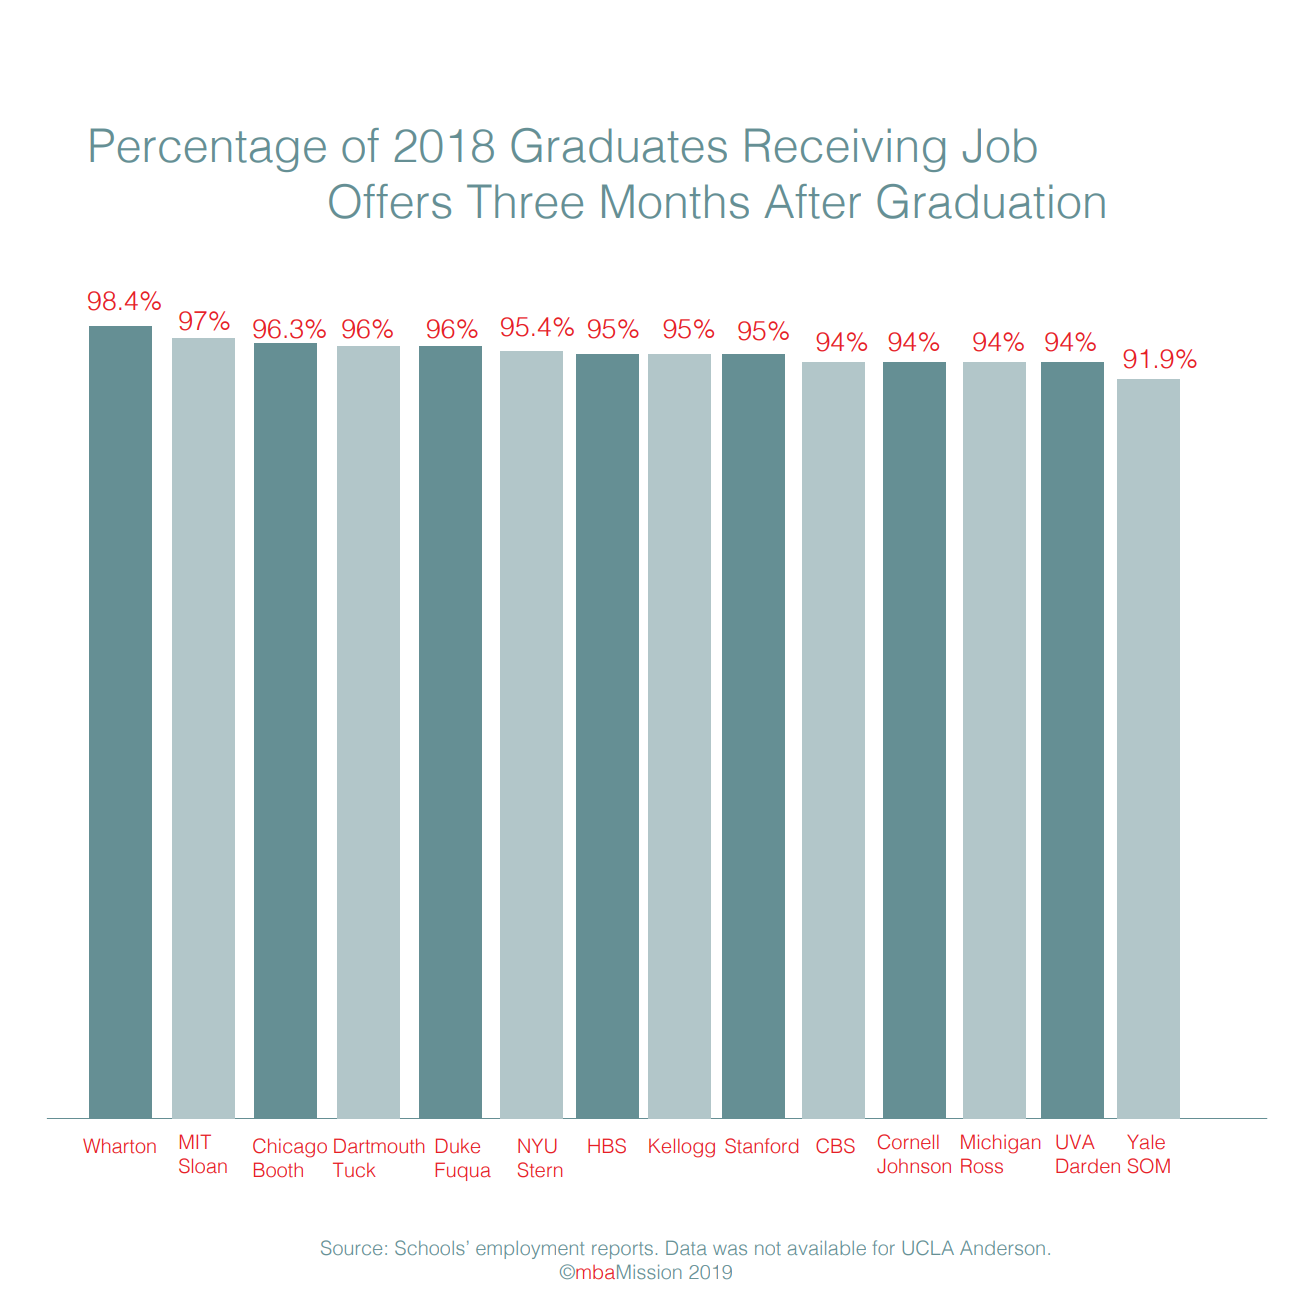 Post-MBA Employment Among the Class of 2018 at Top-Ranked Business Schools